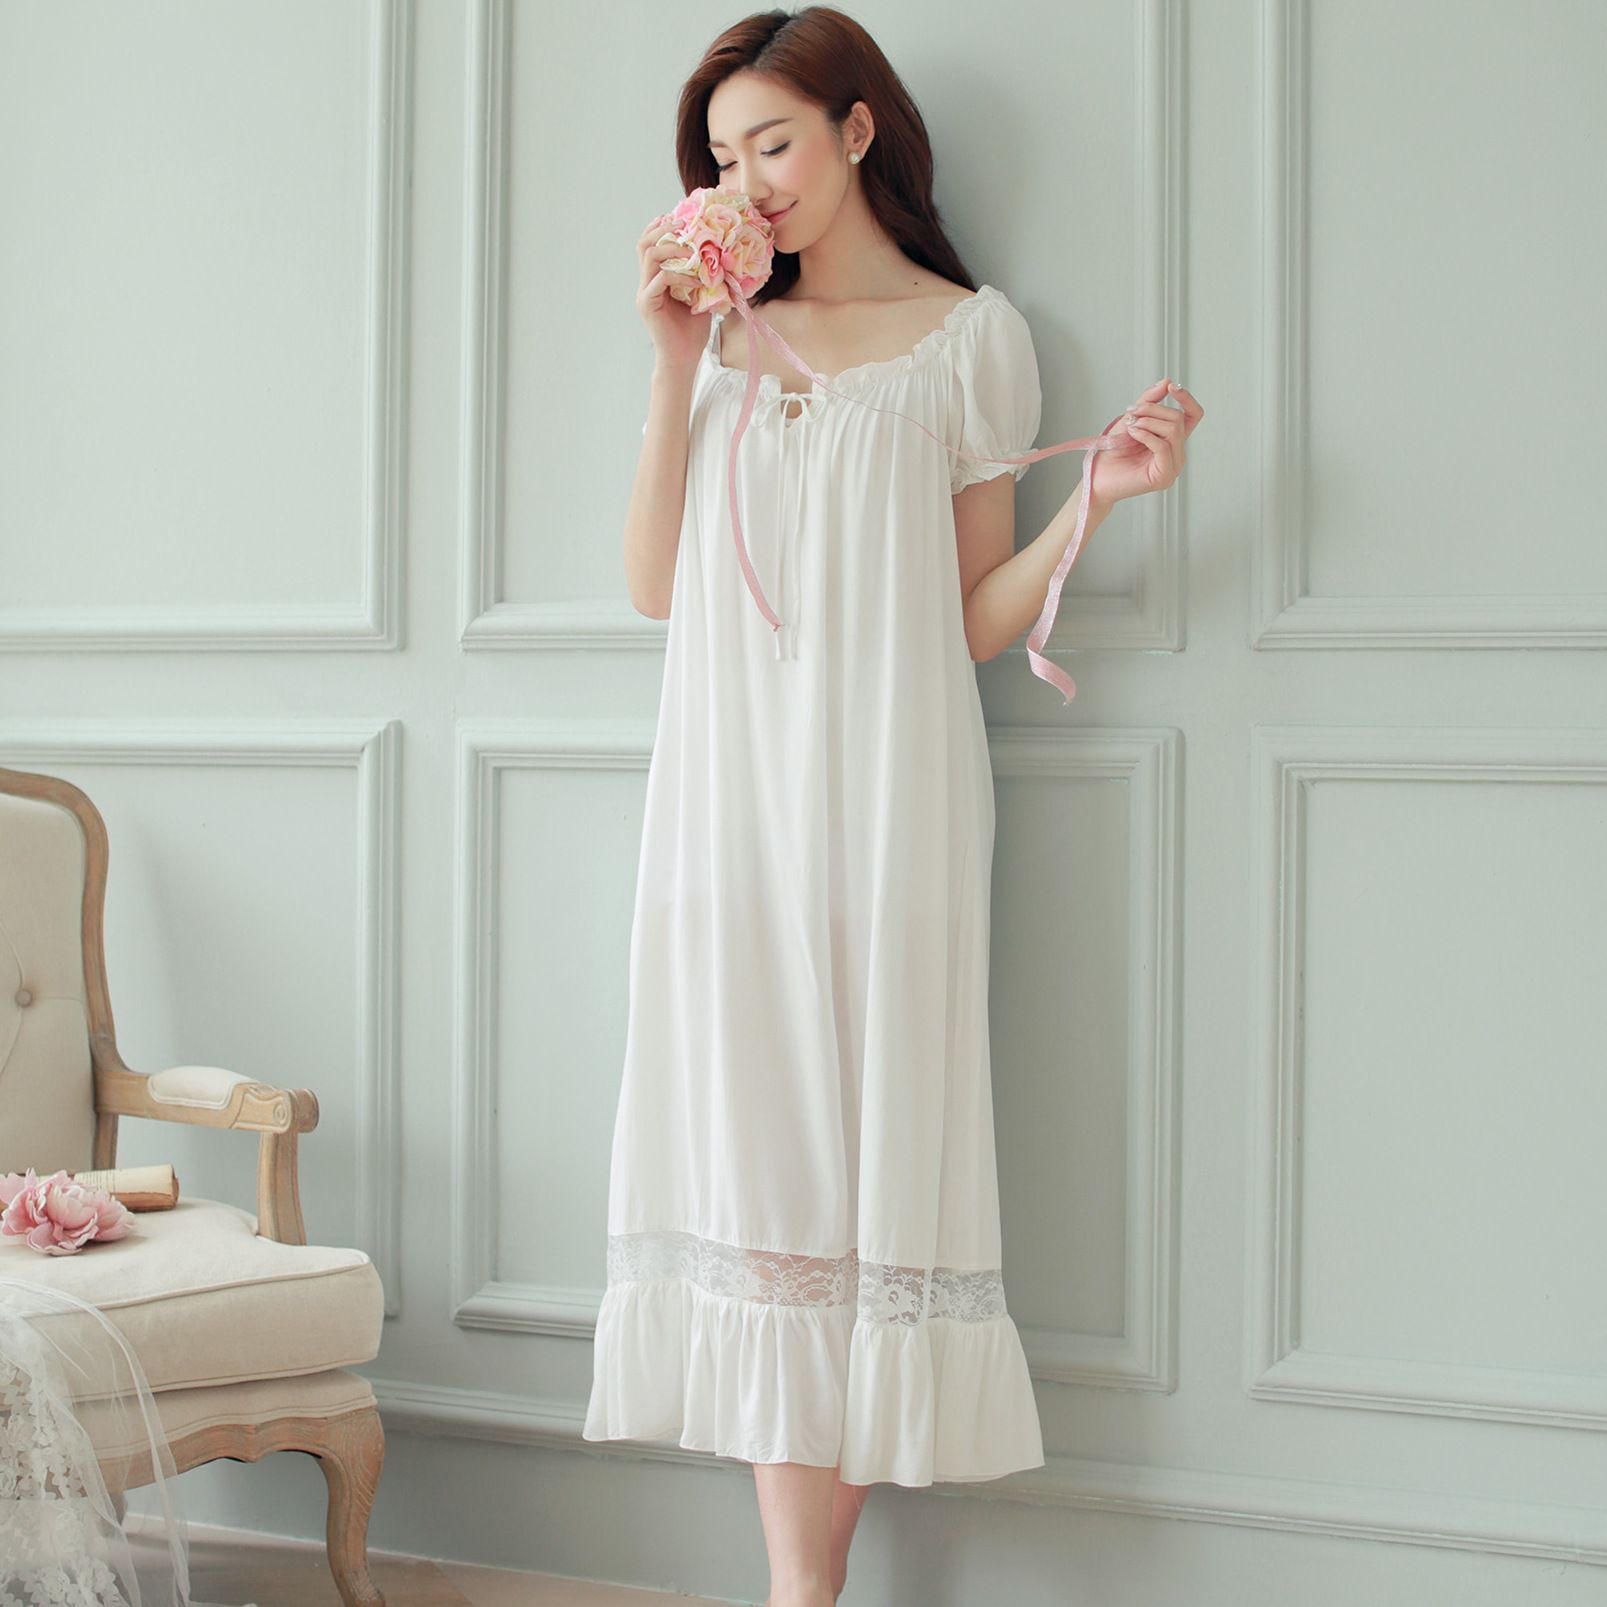 edd9a6ed55 Aliexpress.com   Buy Female short sleeved summer long nightgown princess  nightgown Korean court tracksuit from Reliable long nightgown suppliers on  Huan ...